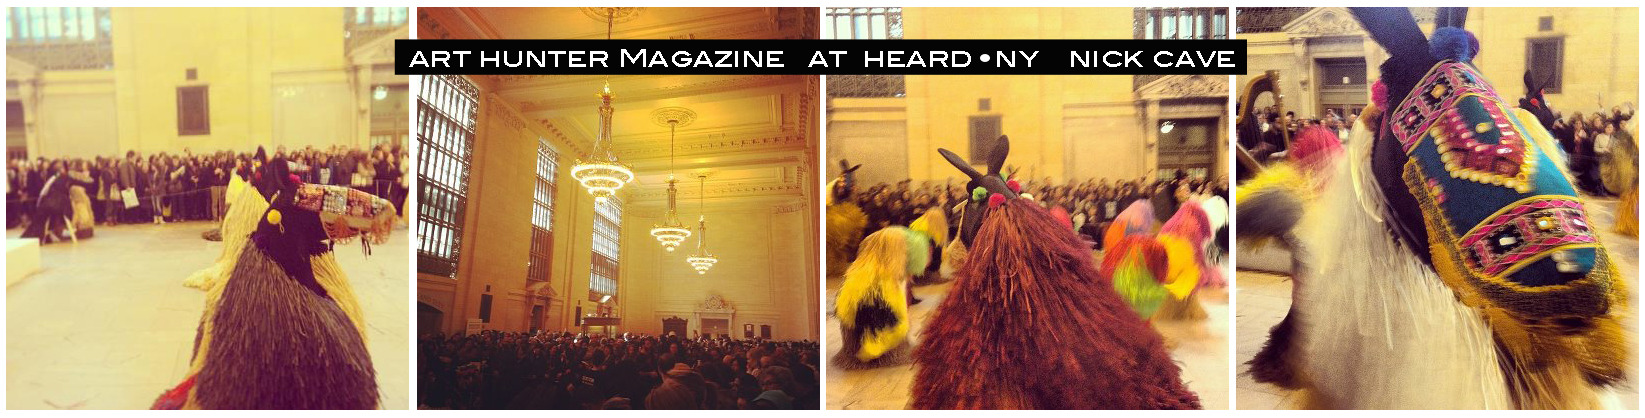 Heard NY by Nick Cave - Art Hunter Magazine - March 27, 2013 - 2pm show Ph. F.Nale